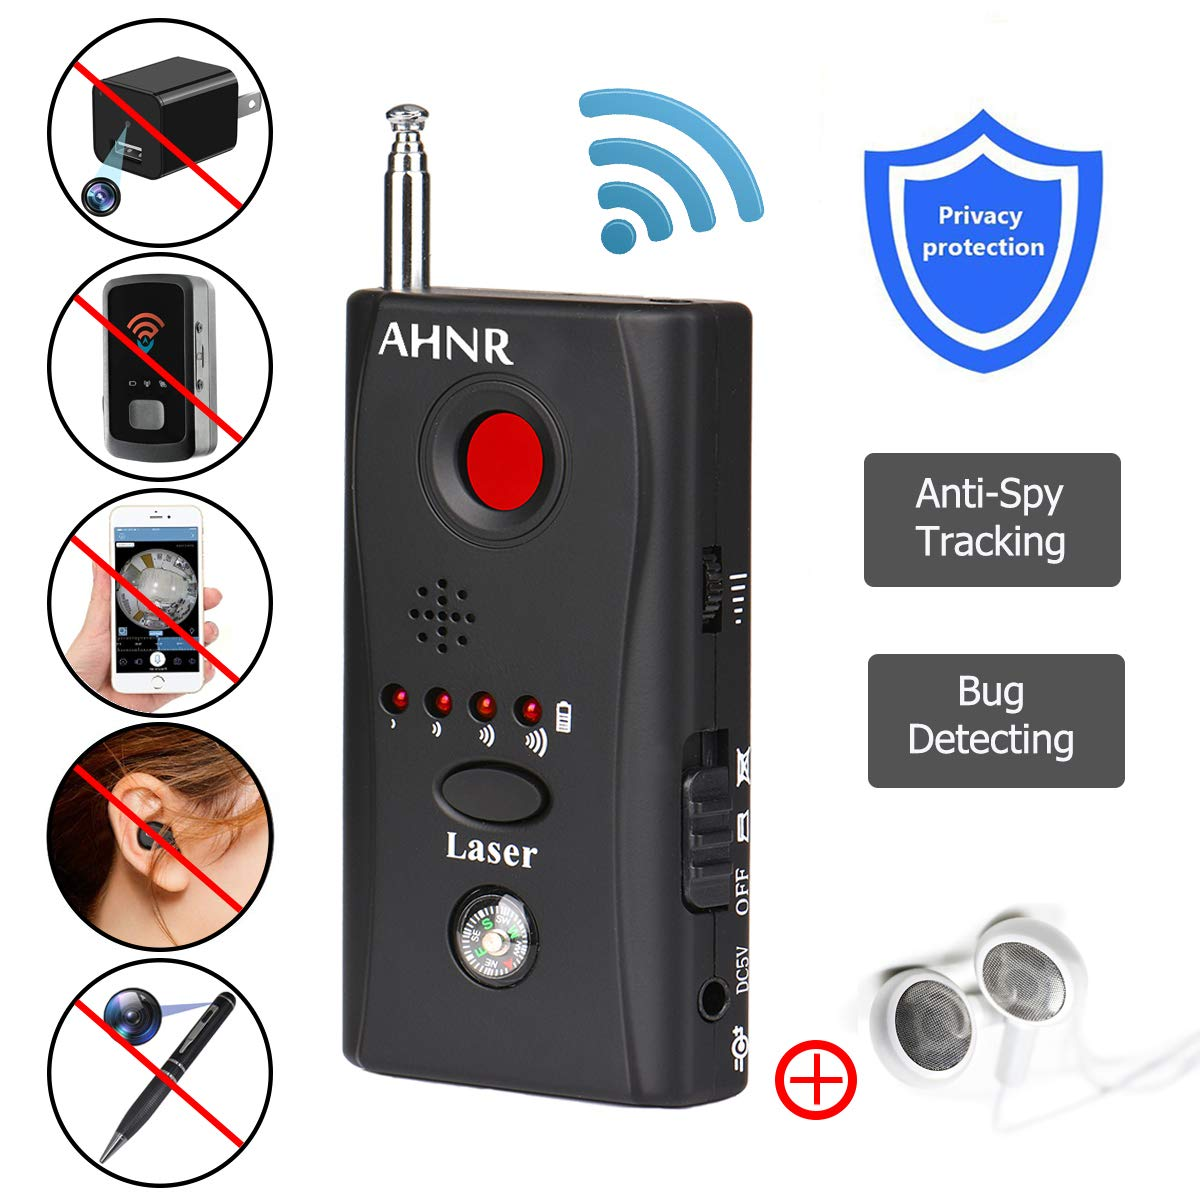 RF Bug Detector, Wireless Signal Detector for Spy Hidden Camera, AHNR Anti Spy Hidden Camera Pinhole Laser Lens GSM Device Ultra-high Sensitivity Full-Range Tracker Finder Portable Alarm Detector